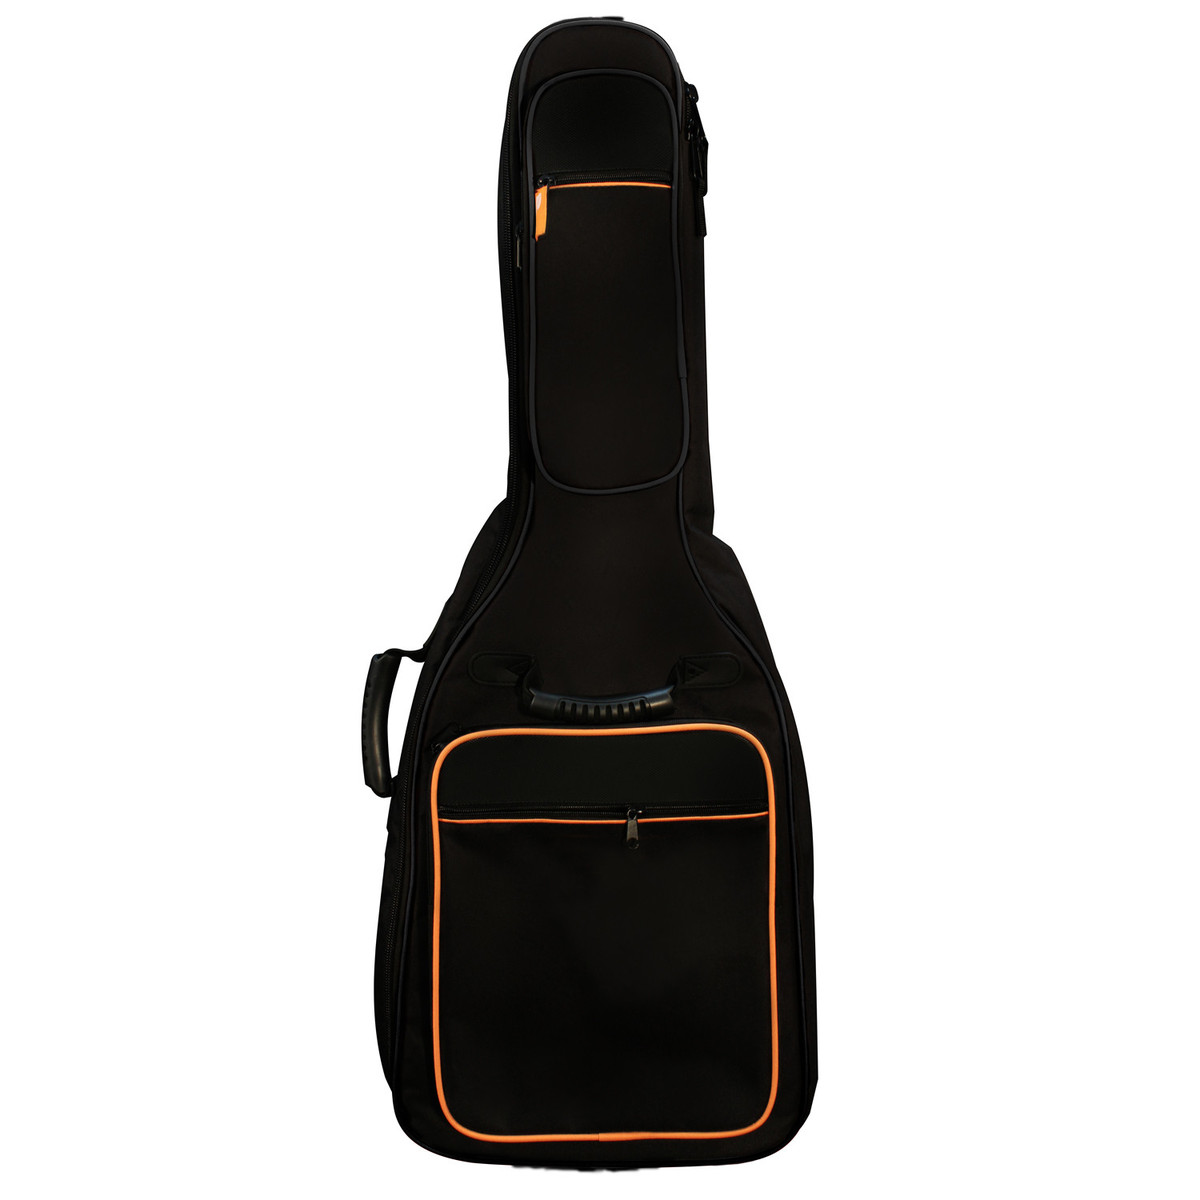 Image of Ashton ARM1500 Electric Guitar Bag